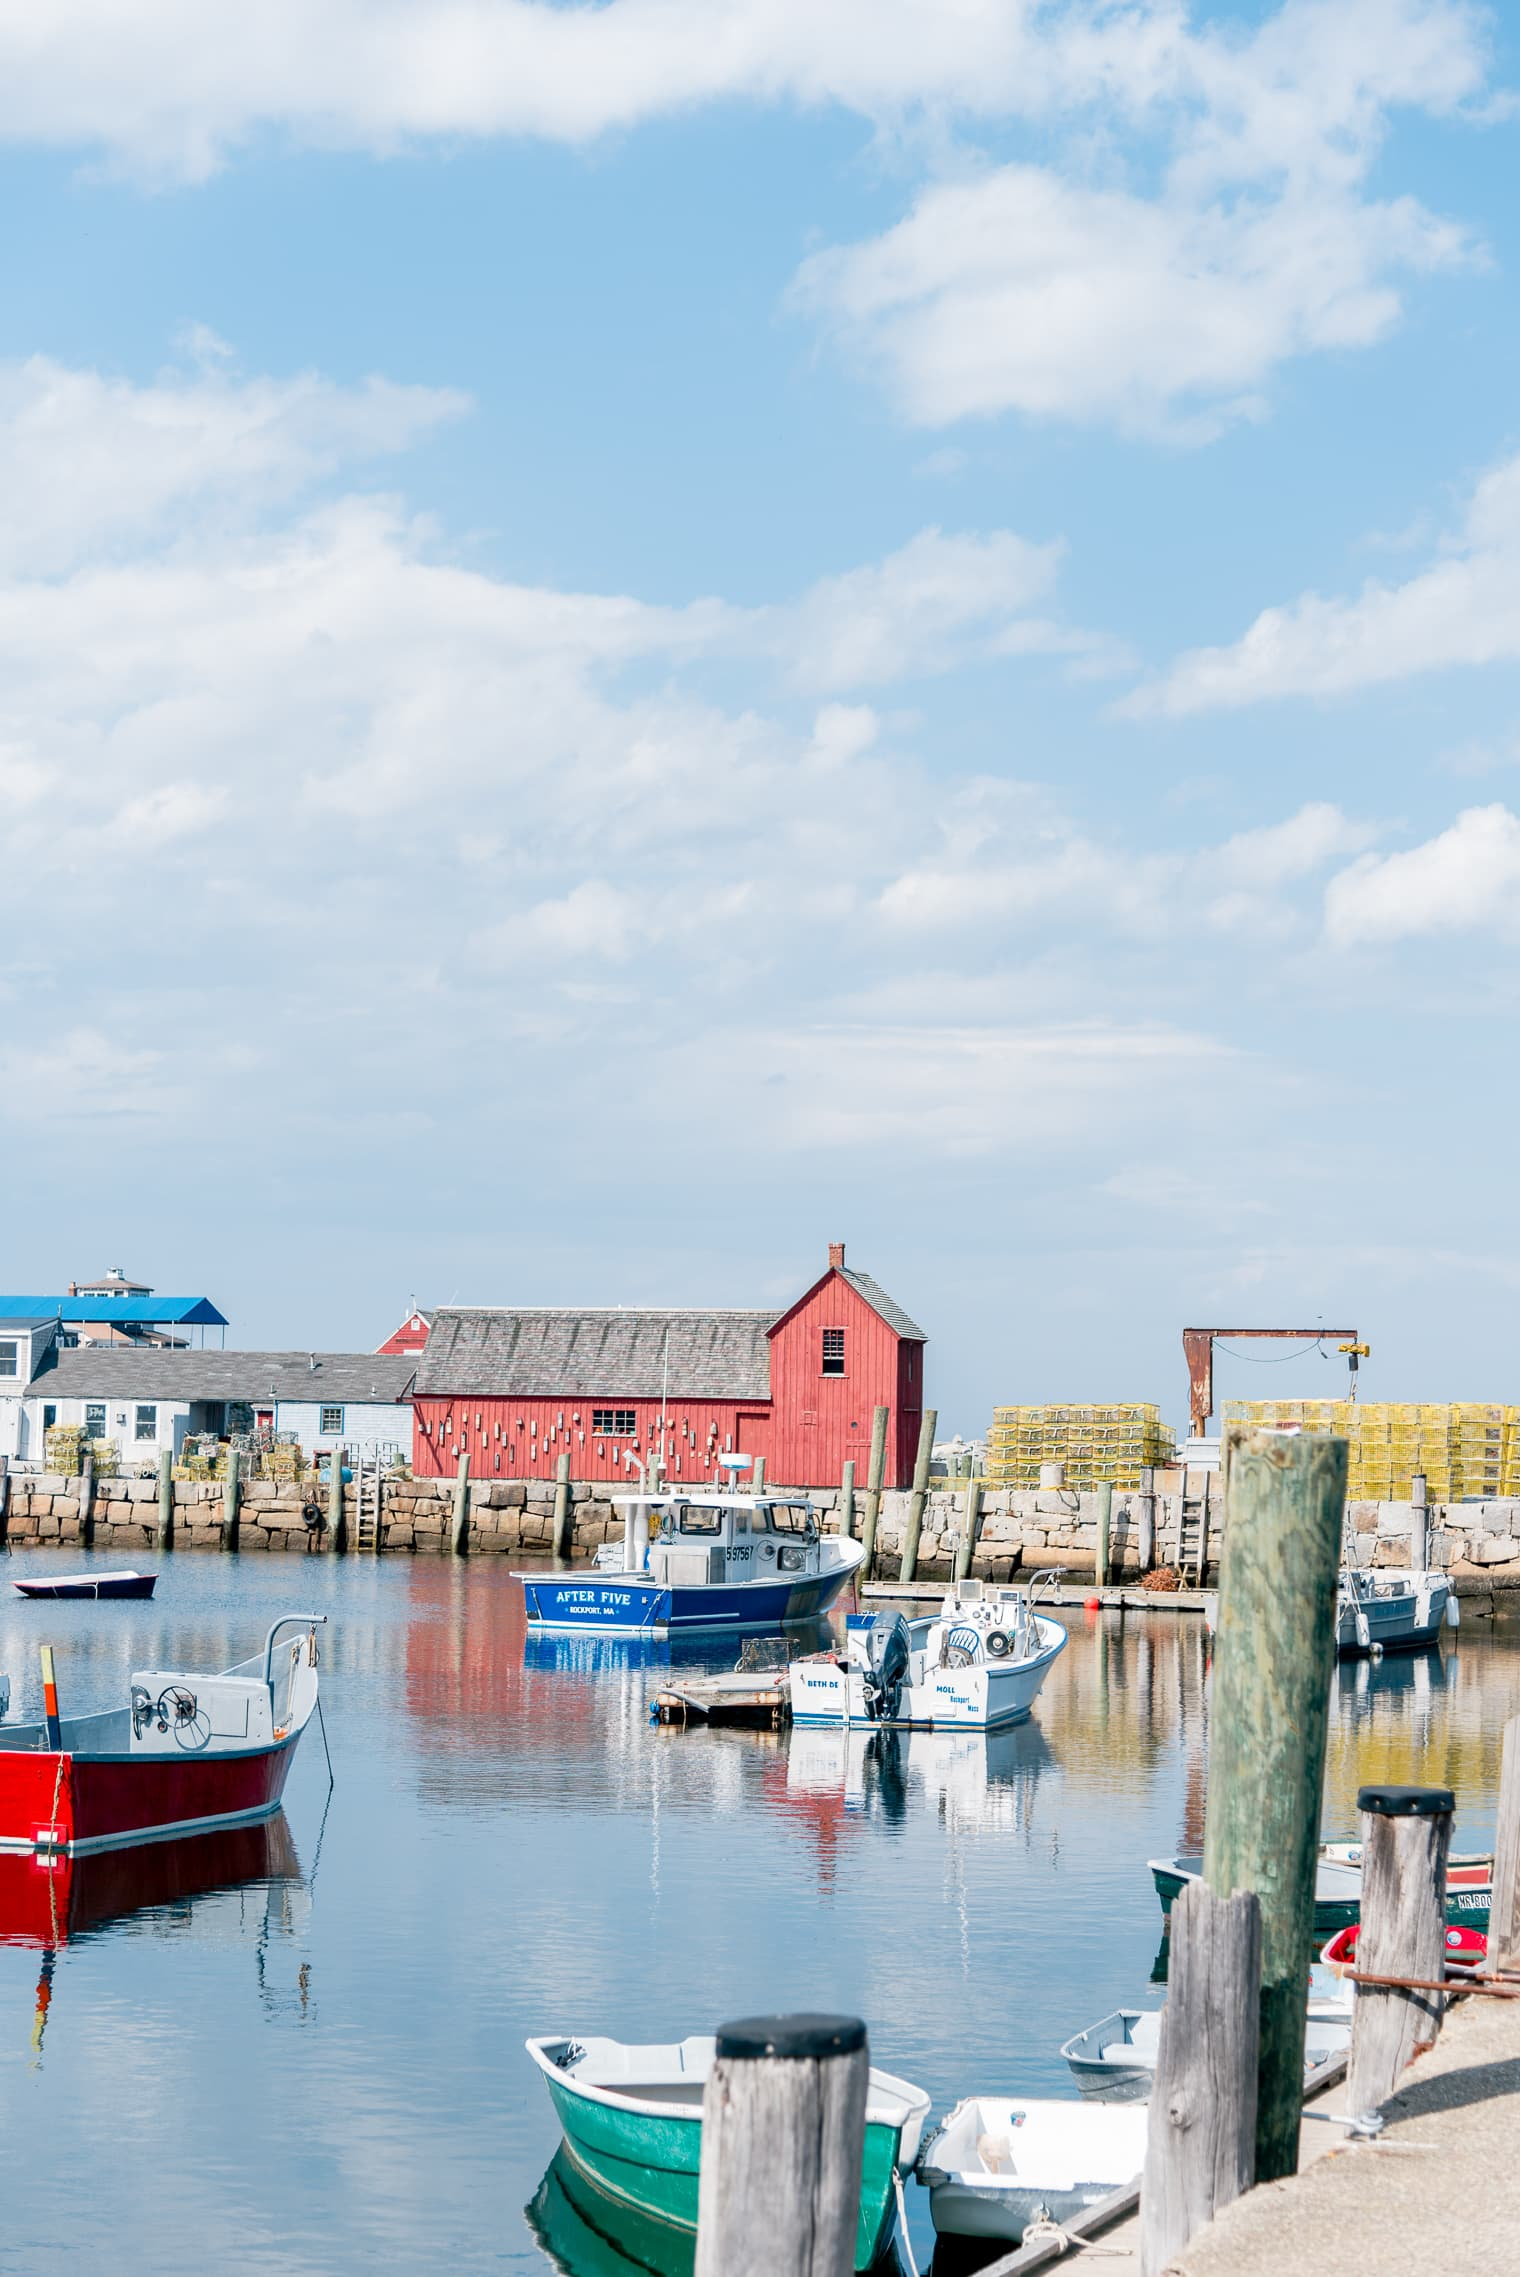 The absolute best things to do in Rockport MA // Pebble beach rockport // Bearskin Neck shops Rockport // Things to do in Rockport, ma. // a Rockport MA travel guide